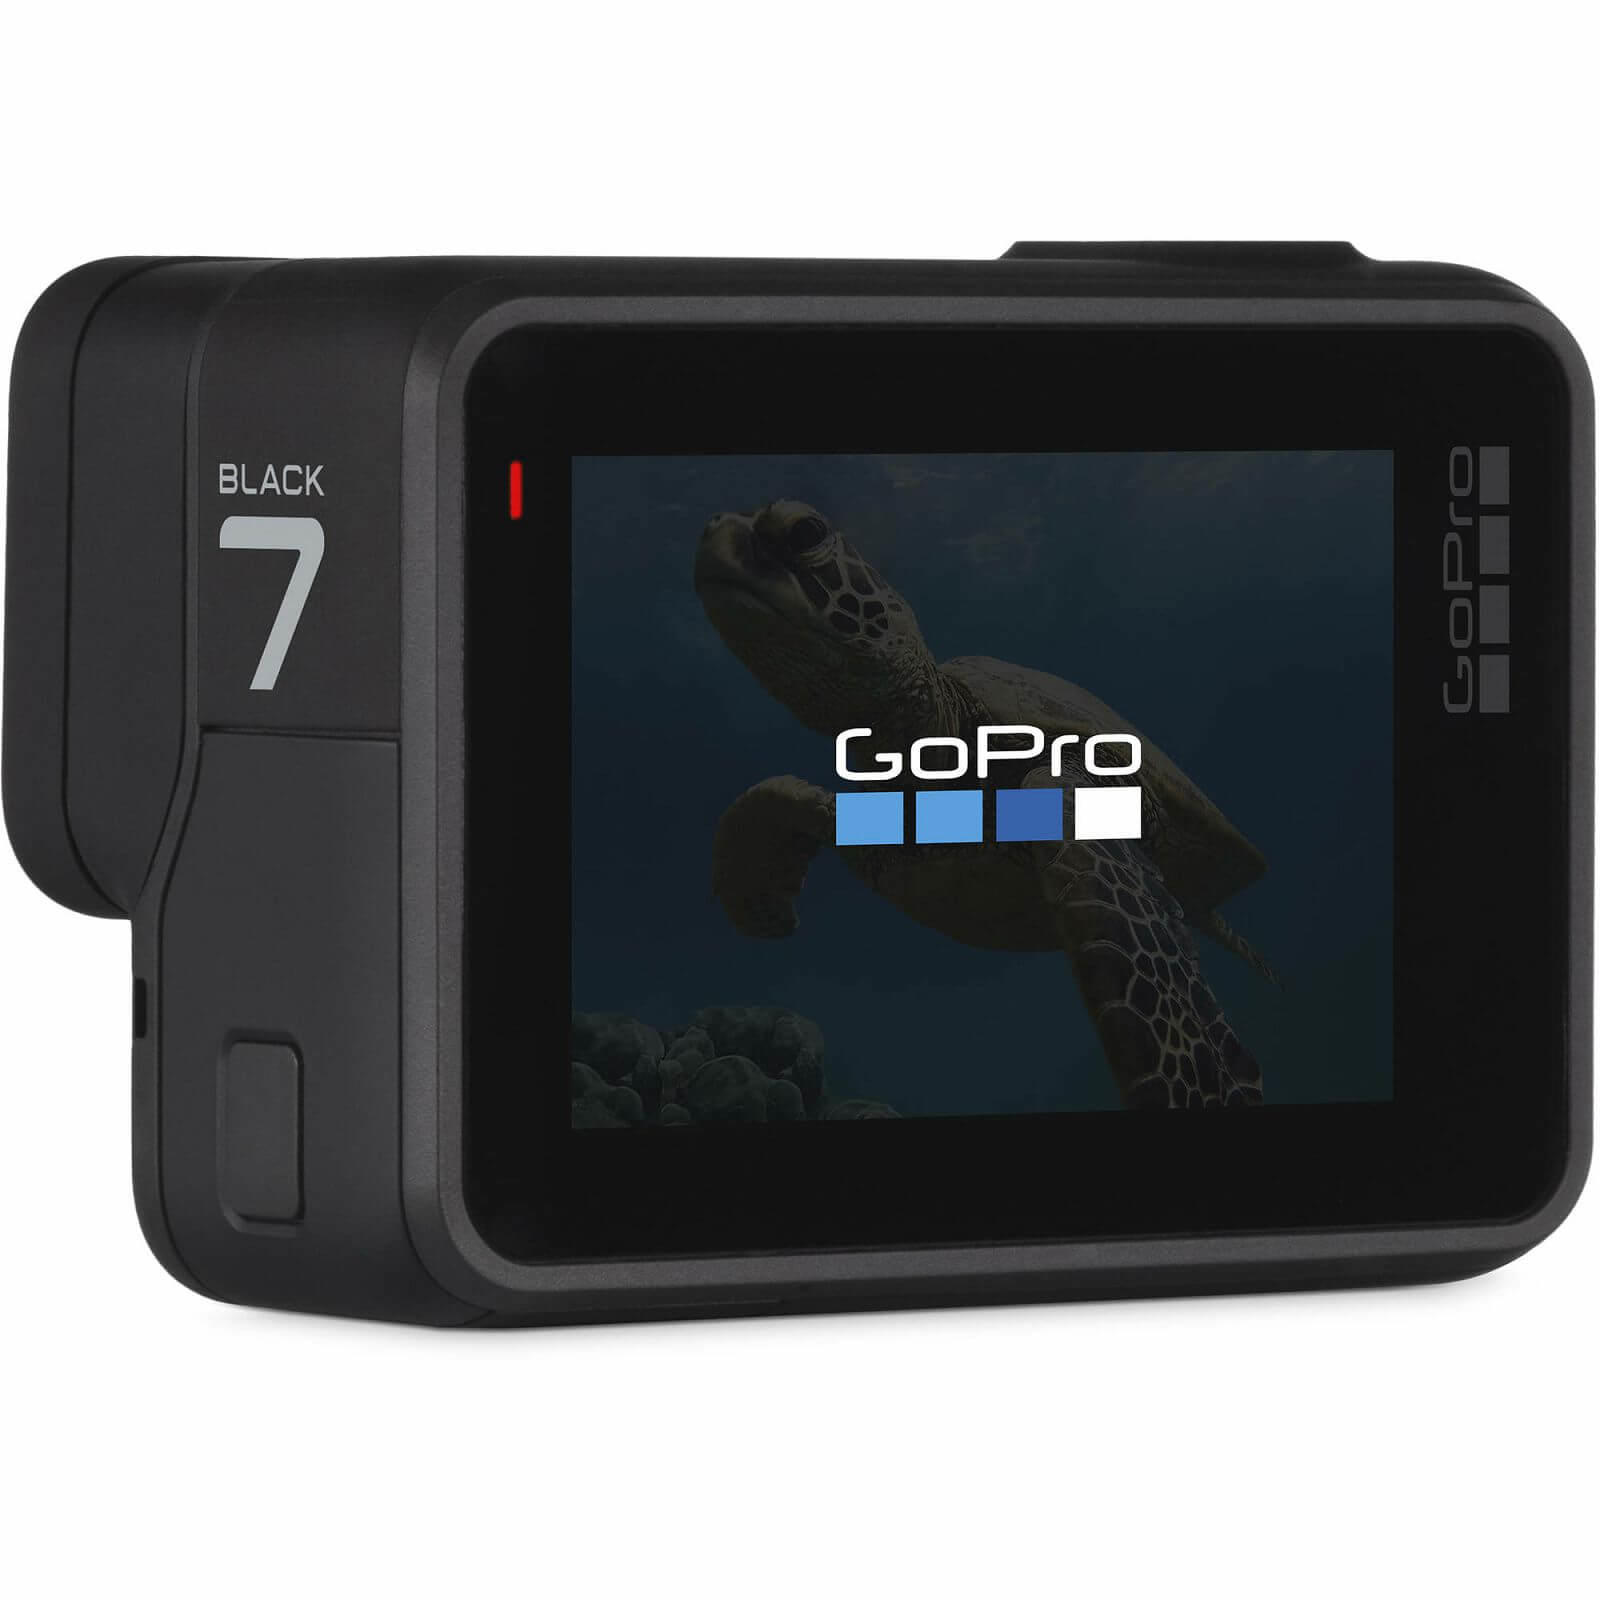 gopro-hero7-black-chdhx-701-818279023077_5.jpg